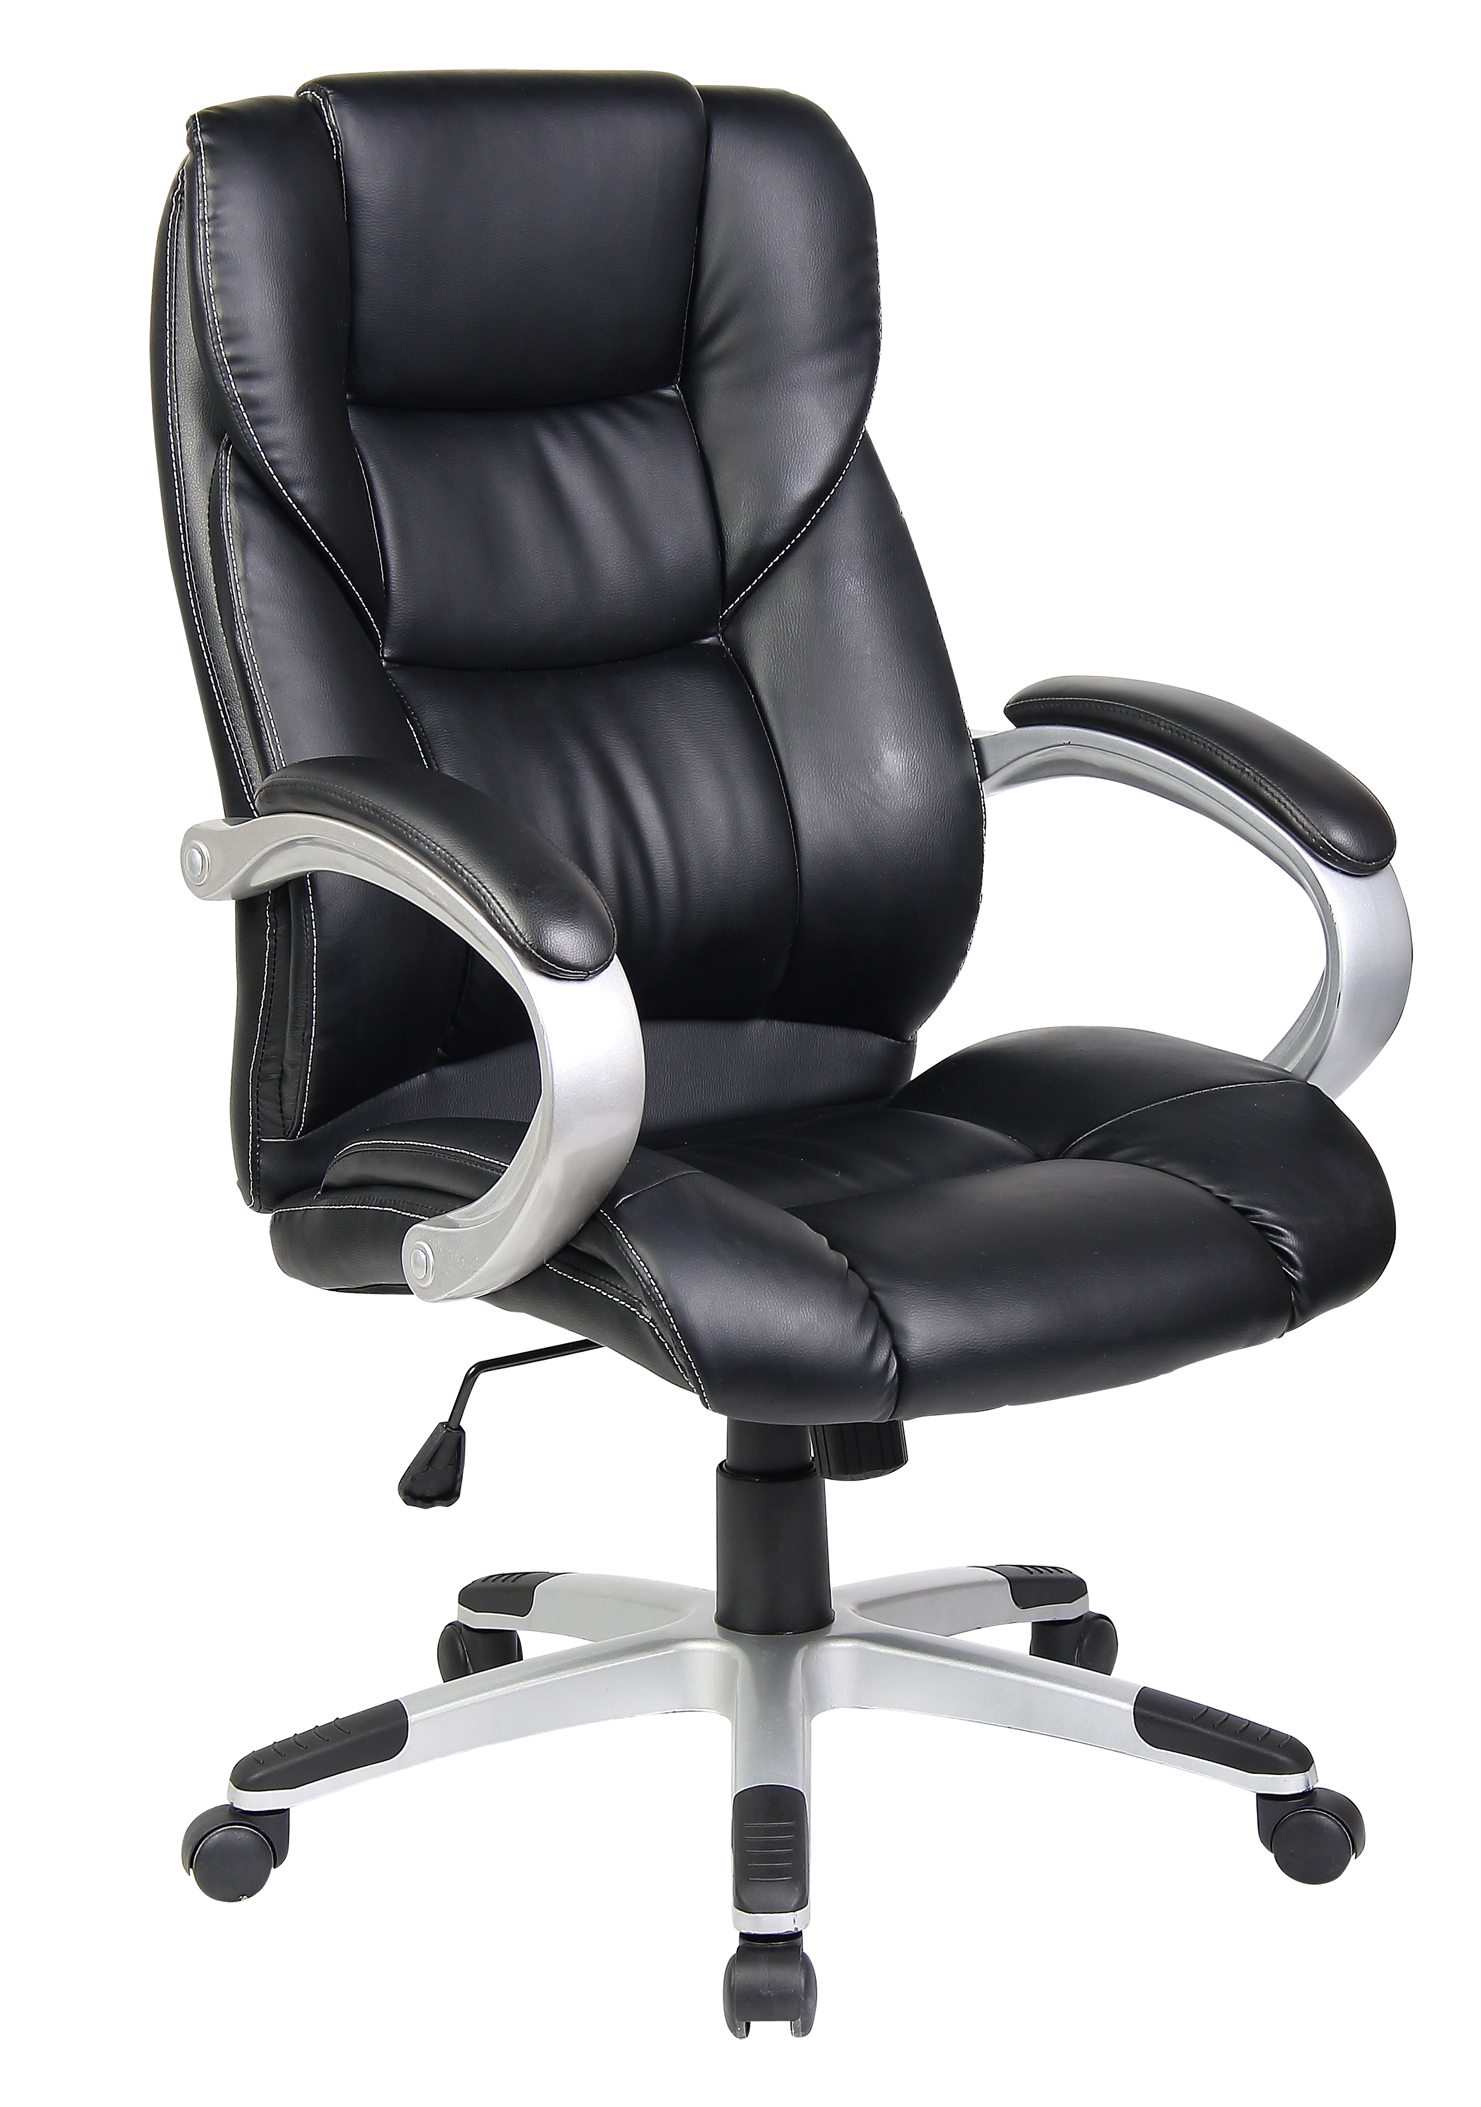 Leather Executive Chair Quality Swivel Pu Leather Executive Office Furnitue